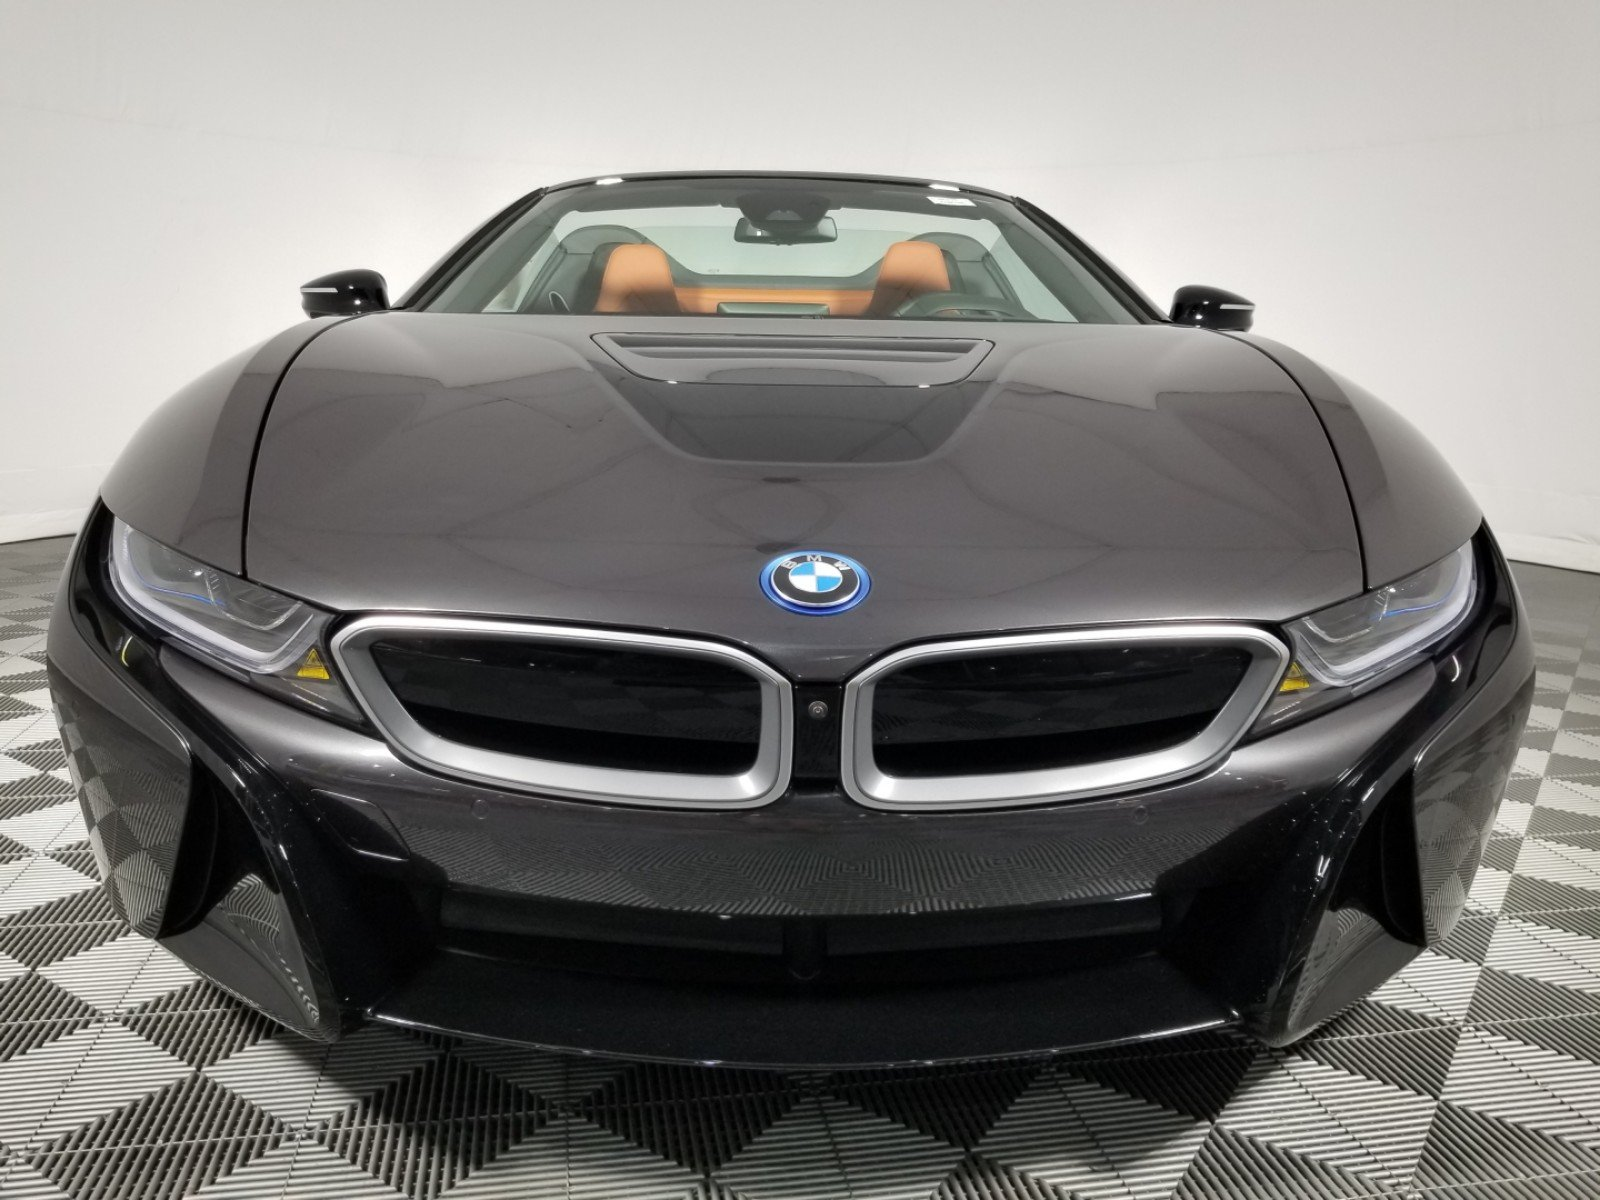 New 2019 BMW i8 Convertible in Wayne